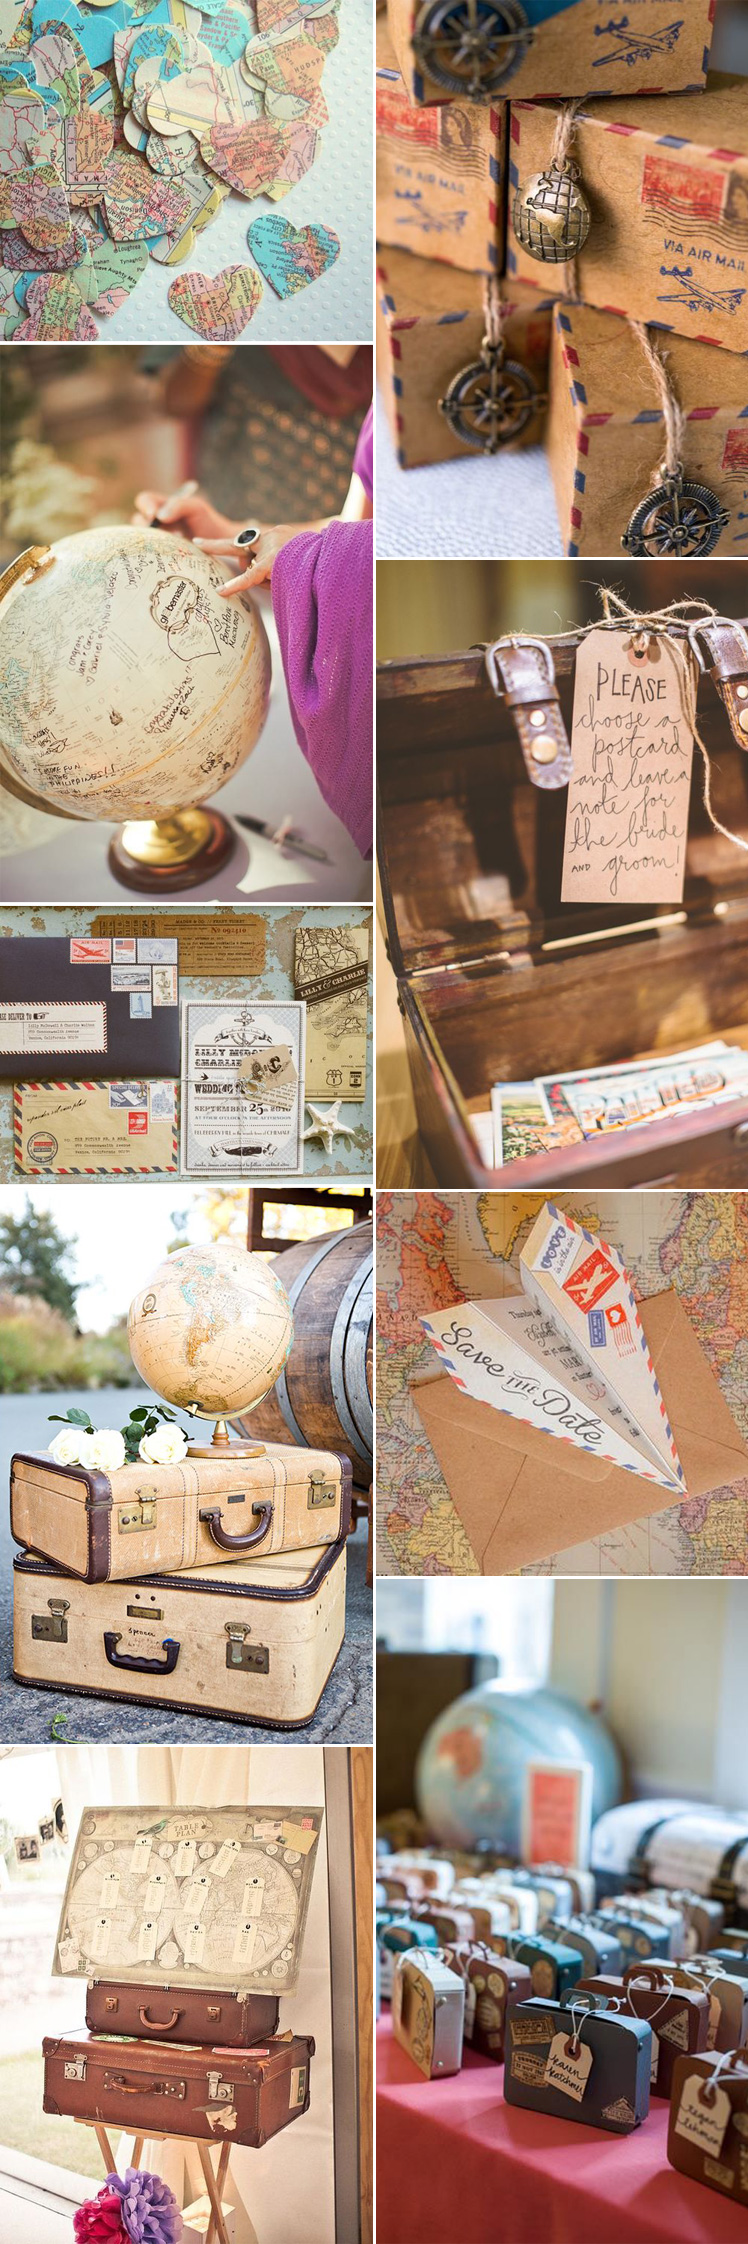 a-vintage-travel-themed-wedding-1.jpg